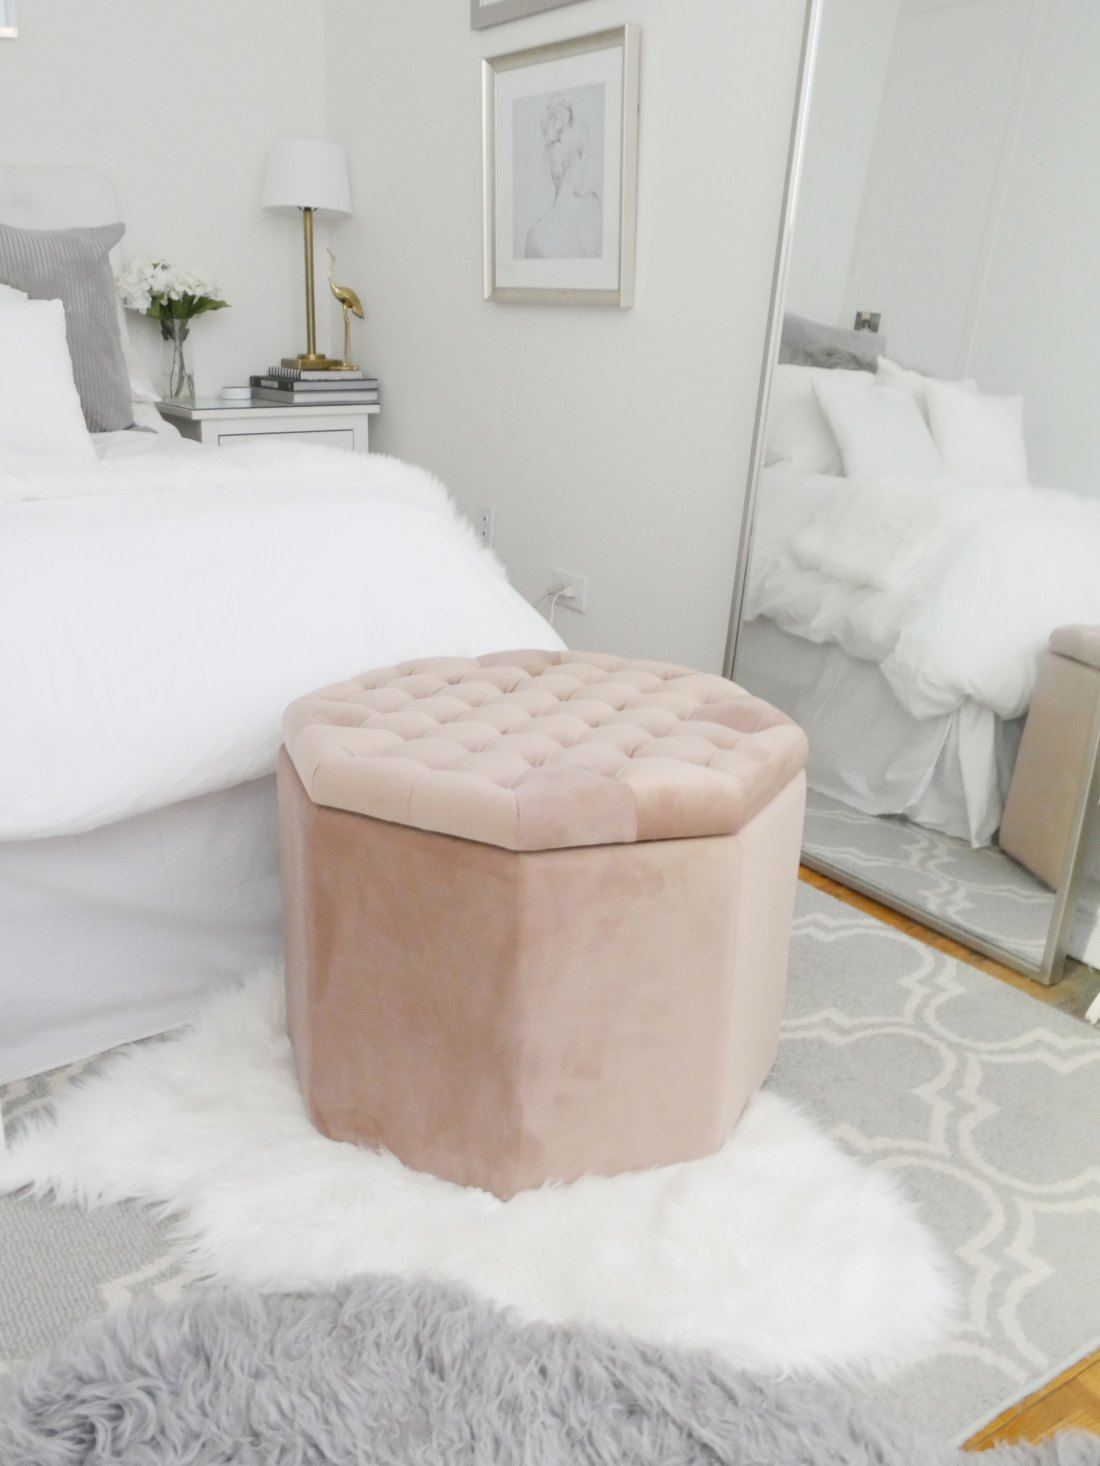 Live in a small space and struggle with storage? Try these chic furniture pieces that have built-in storage! #rentalhomedecorating #rentaldecorating #rentalapartmentdecorating #smalllivingroomideas #smallapartmentdecorating #smallapartmentideas